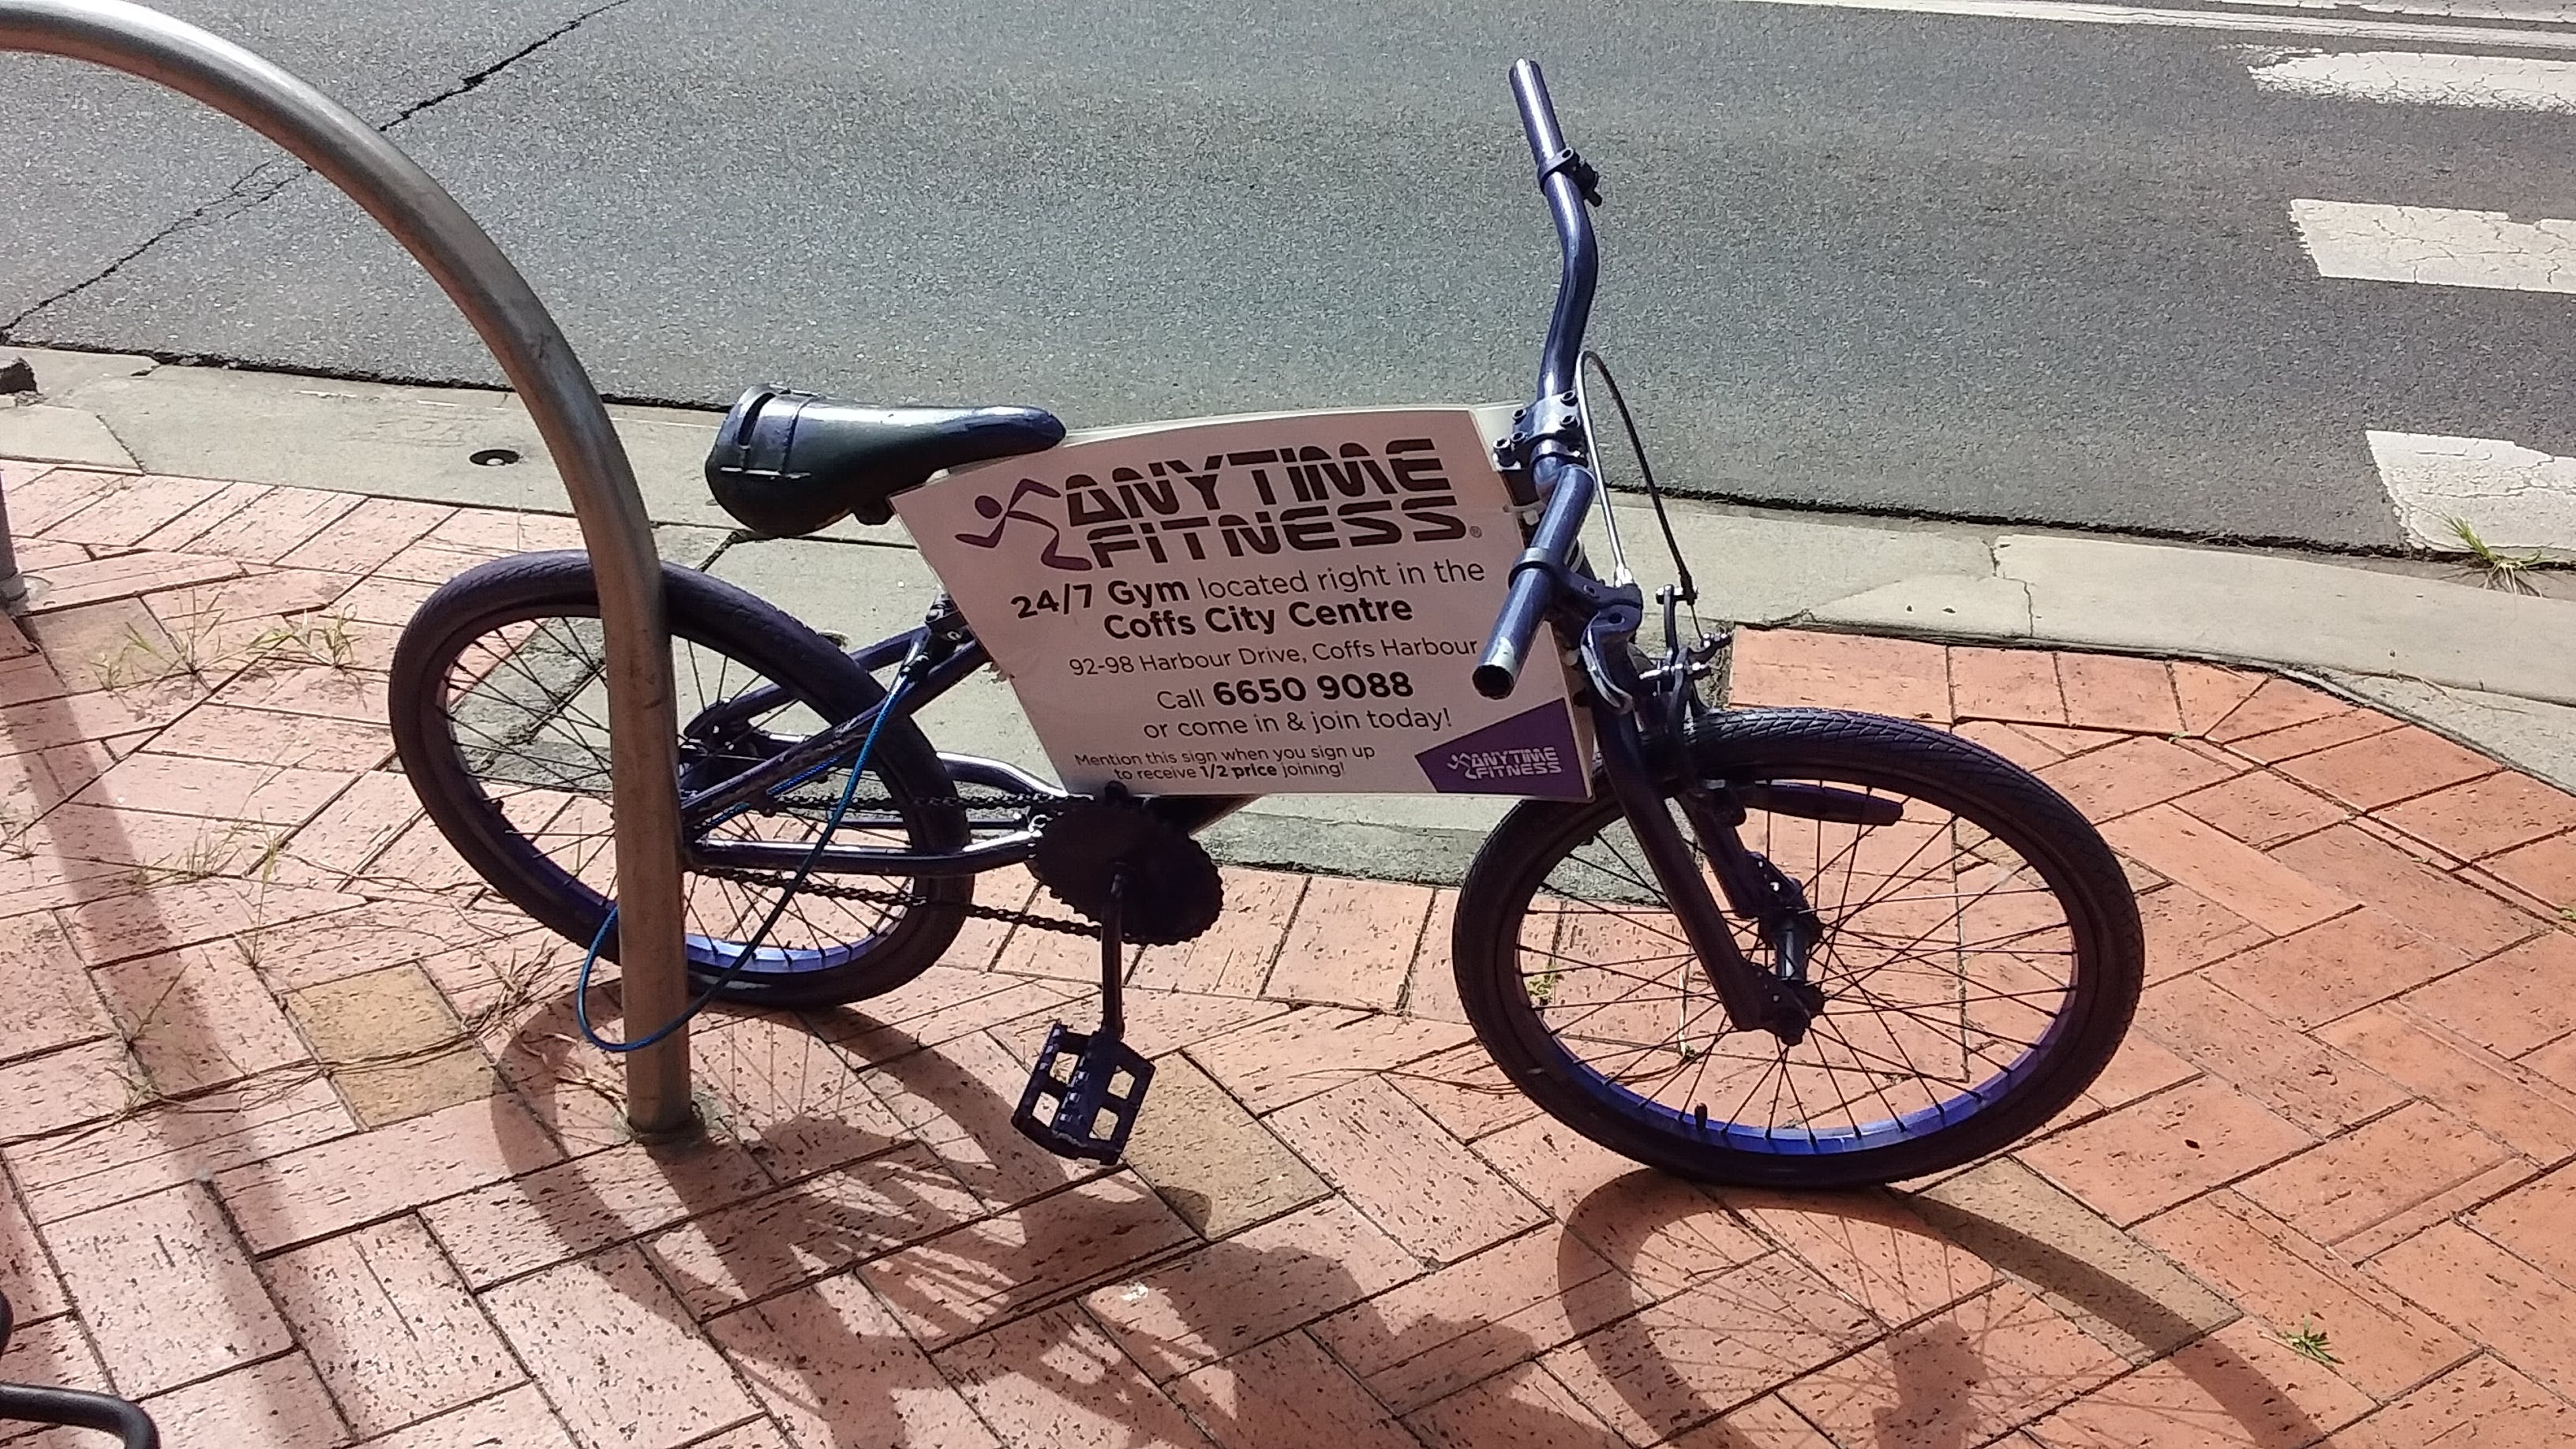 Anytime Fitness Bike